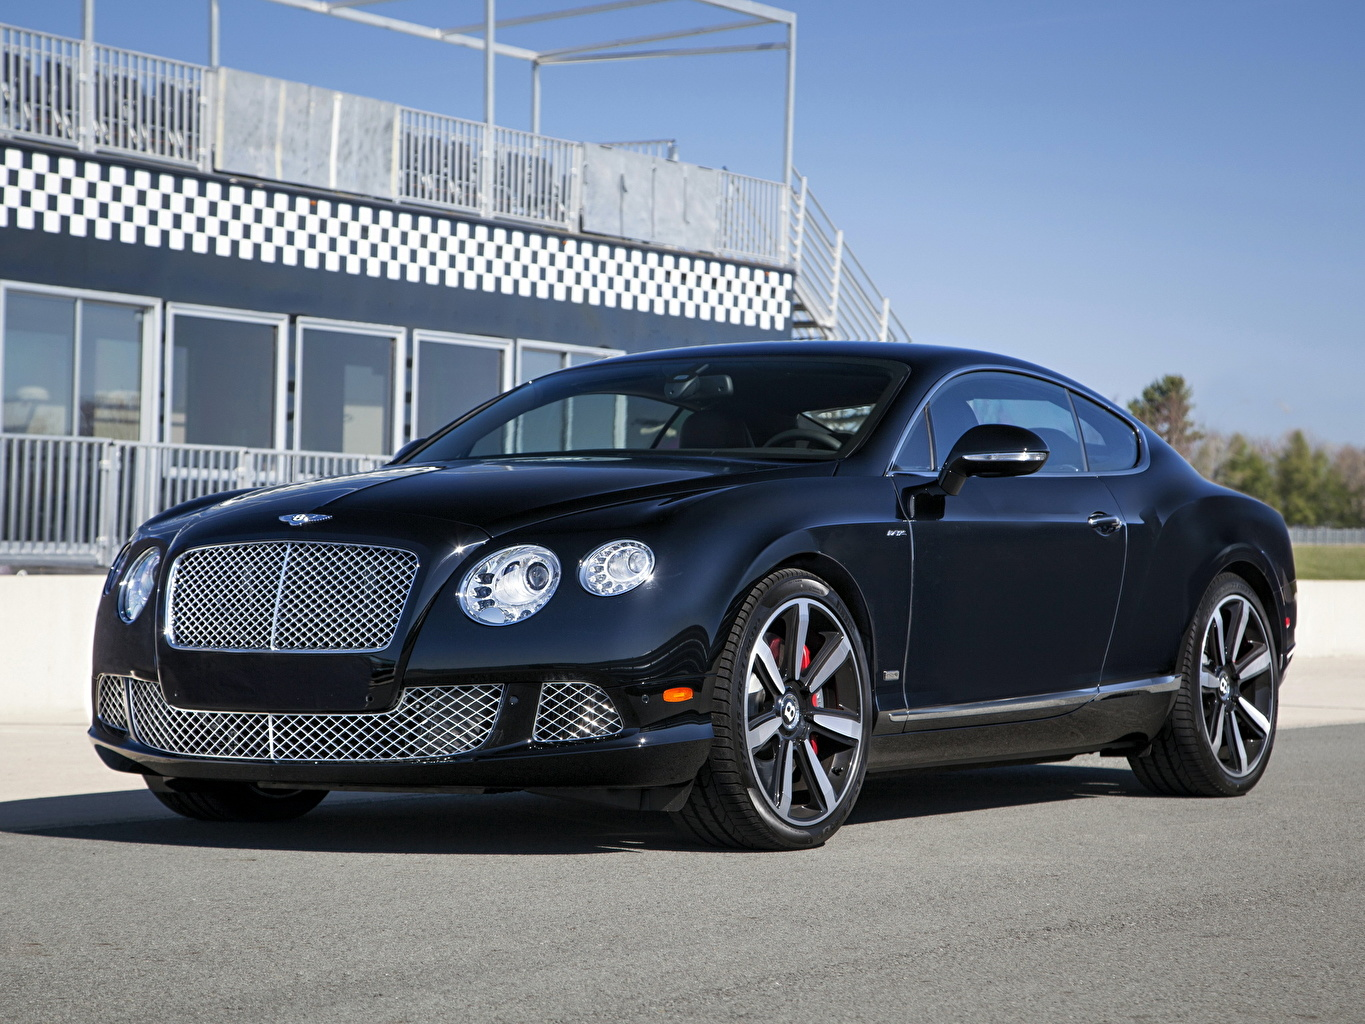 Images Bentley Continental Gt Speed Le Mans Edition Luxury Black